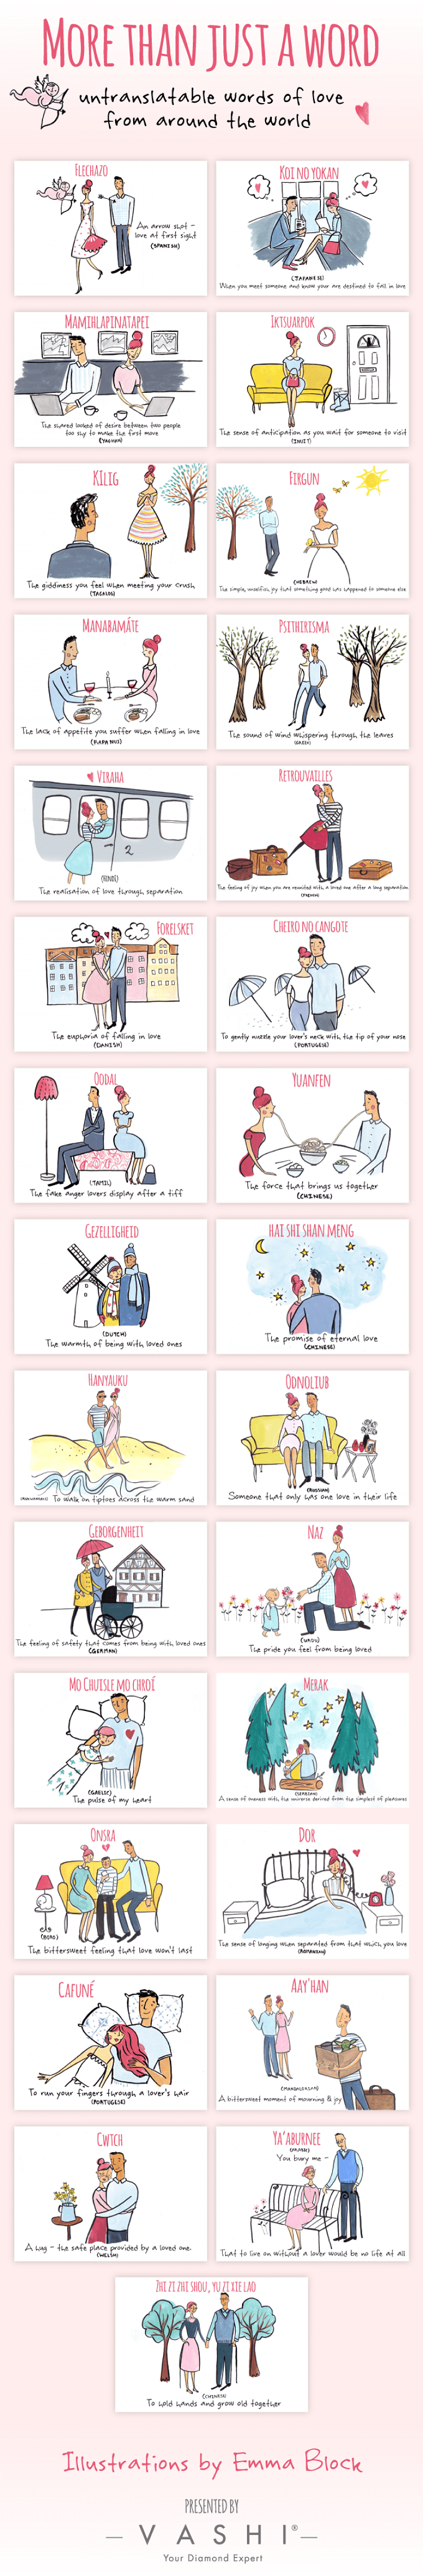 Untranslatable-Words-of-Love-from-Around-the-World